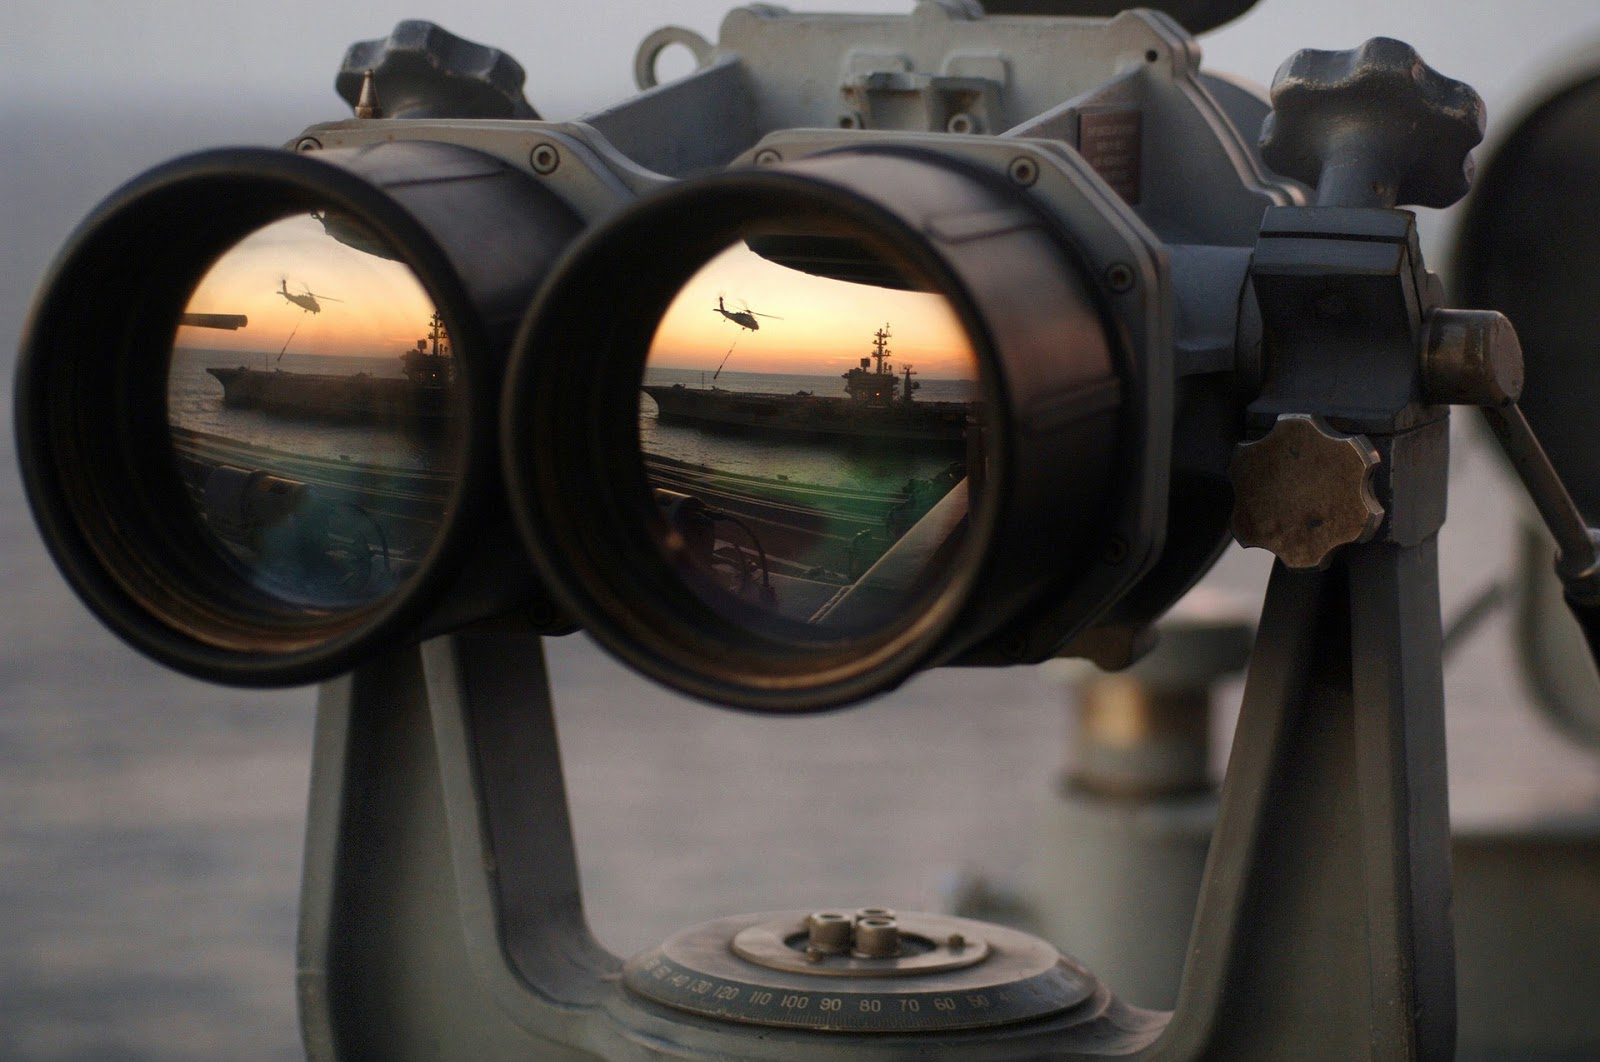 Binoculars spying on a military ship and helicopter